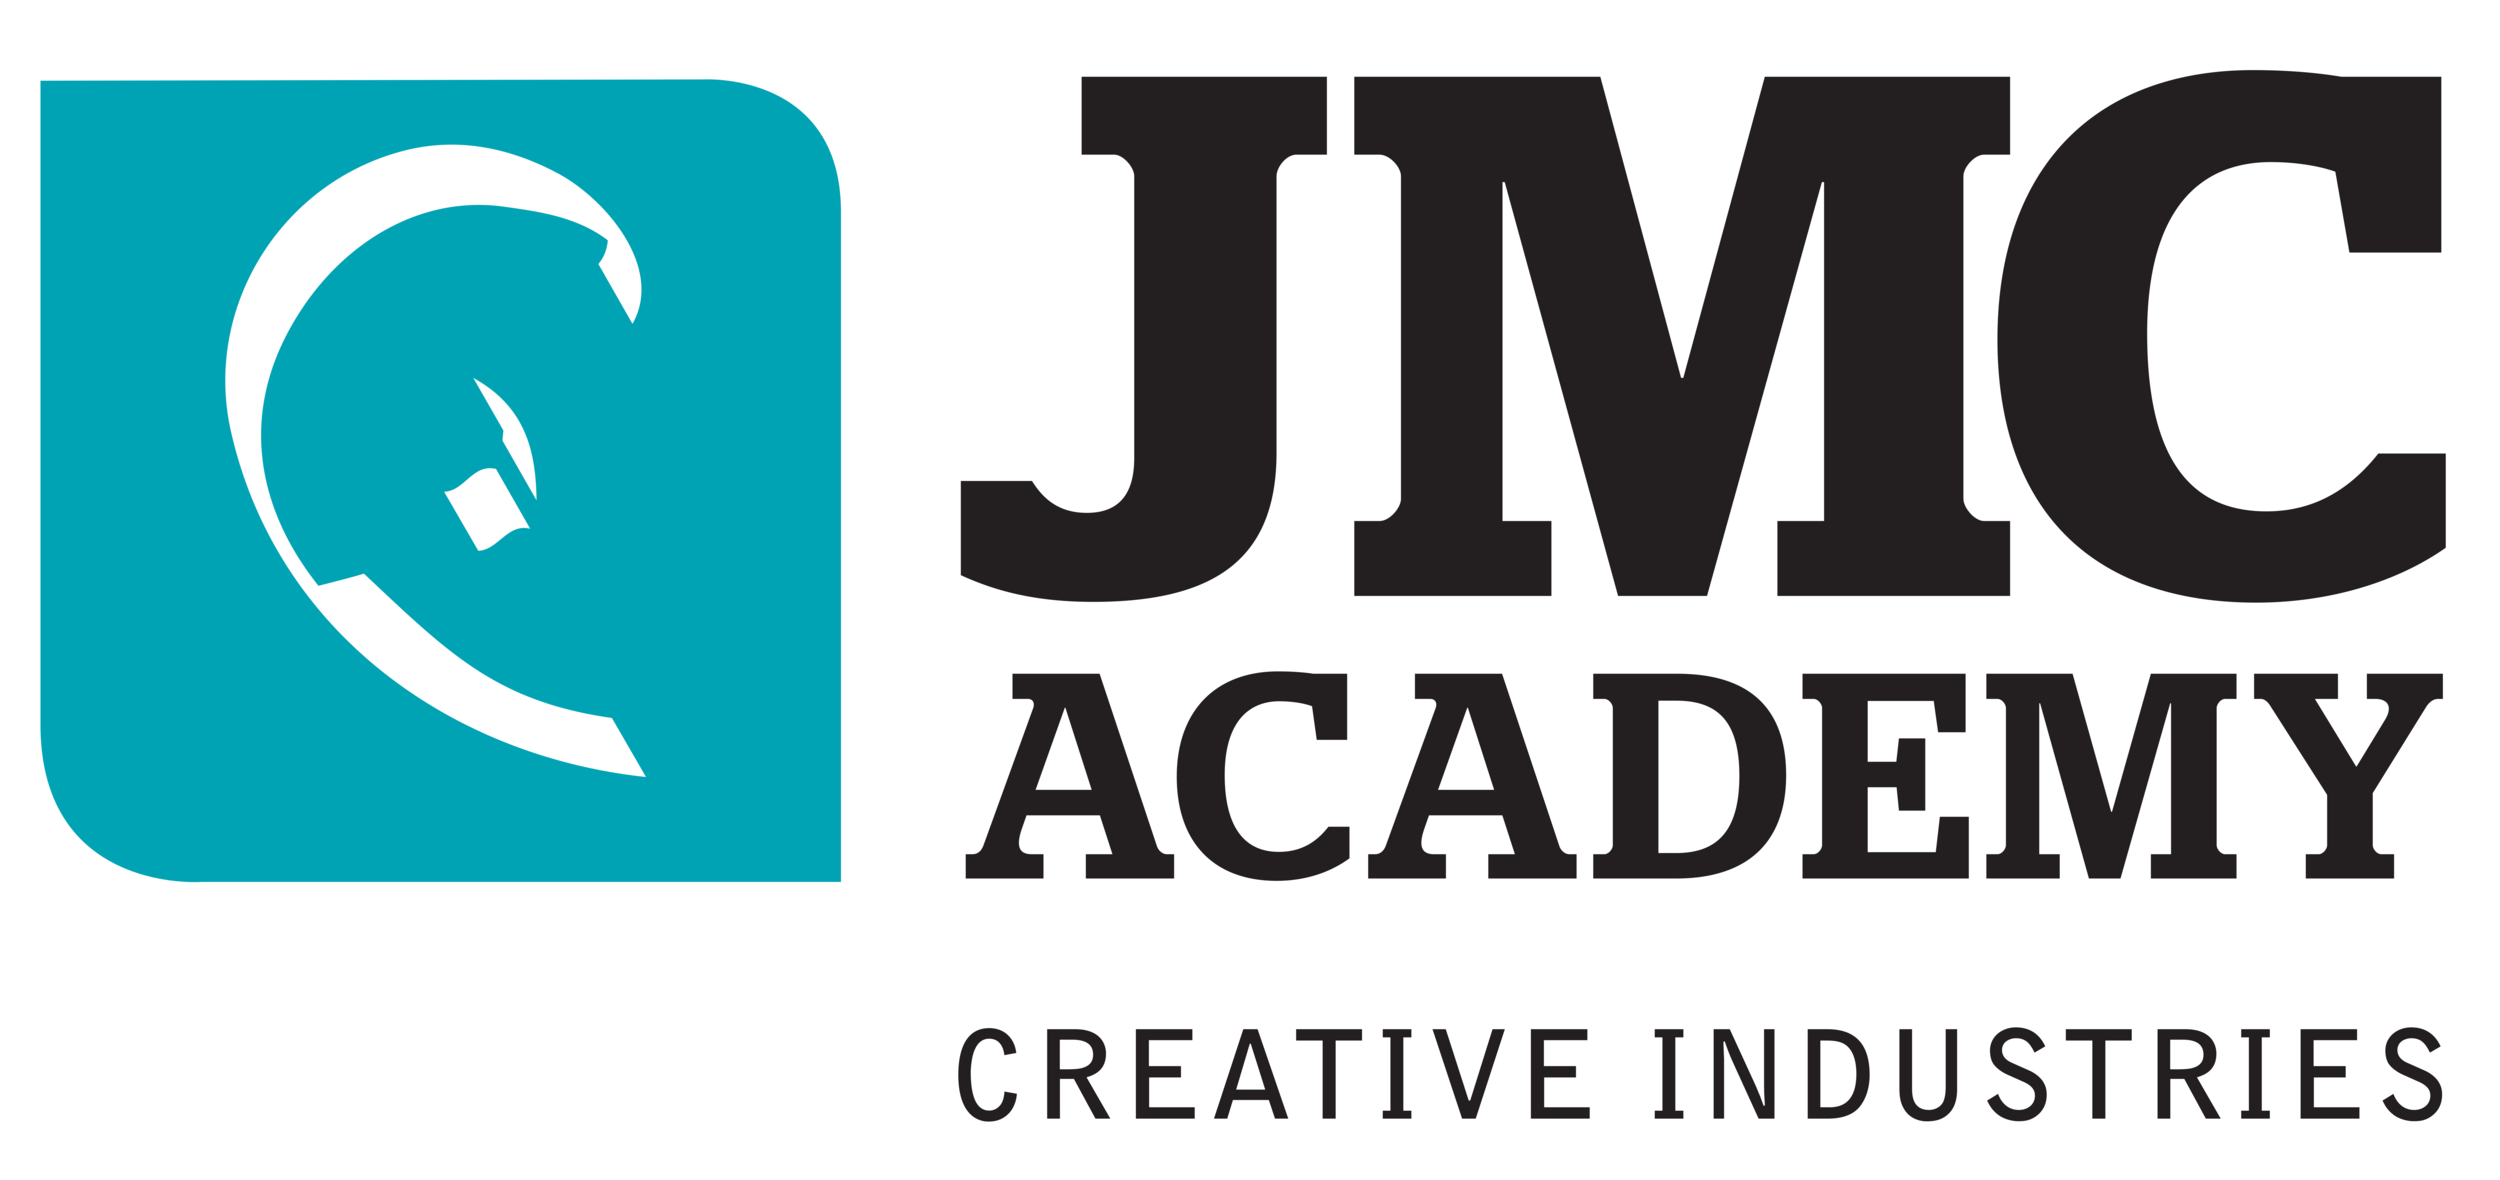 Follow your vision, not the crowd. Study for a creative career with JMC Academy.  Check out our courses in Animation, Audio, Design, Entertainment Management, Film, Game Development, Music Performance or Songwriting and find out why JMC Academy continues to lead the way in Creative Industries education.